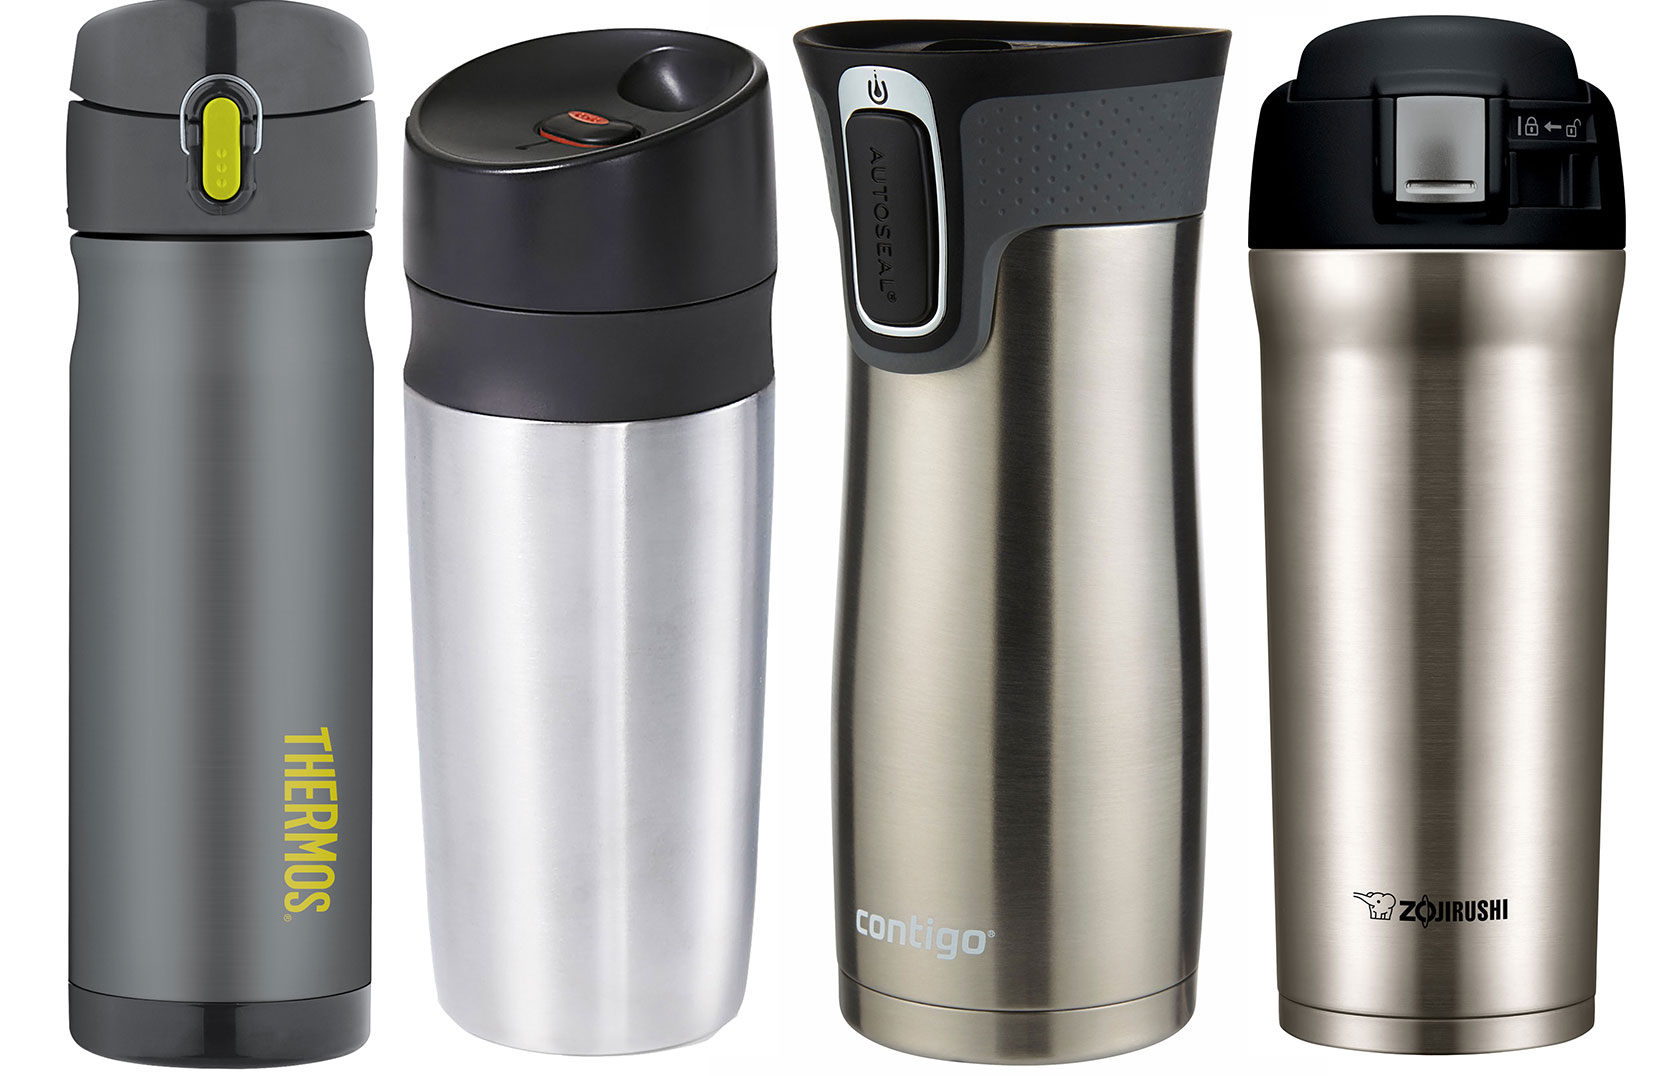 The Best Spill Proof Travel Mug For Every Professional Bloomberg Stainless Steel Collapsible Cup